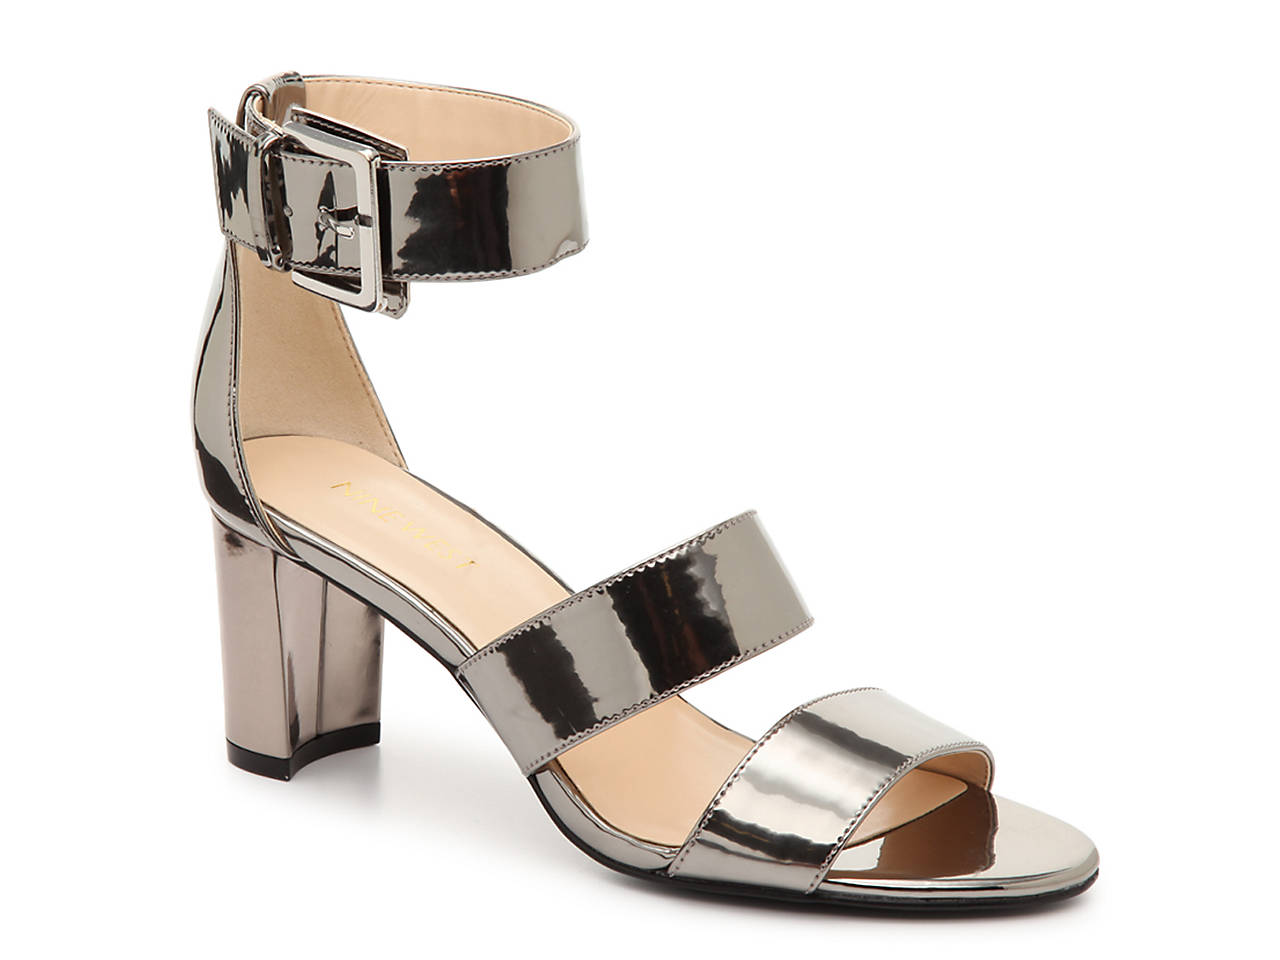 Sofft Patience Patent Leather Block Heel Oxford Pumps vfXsYi